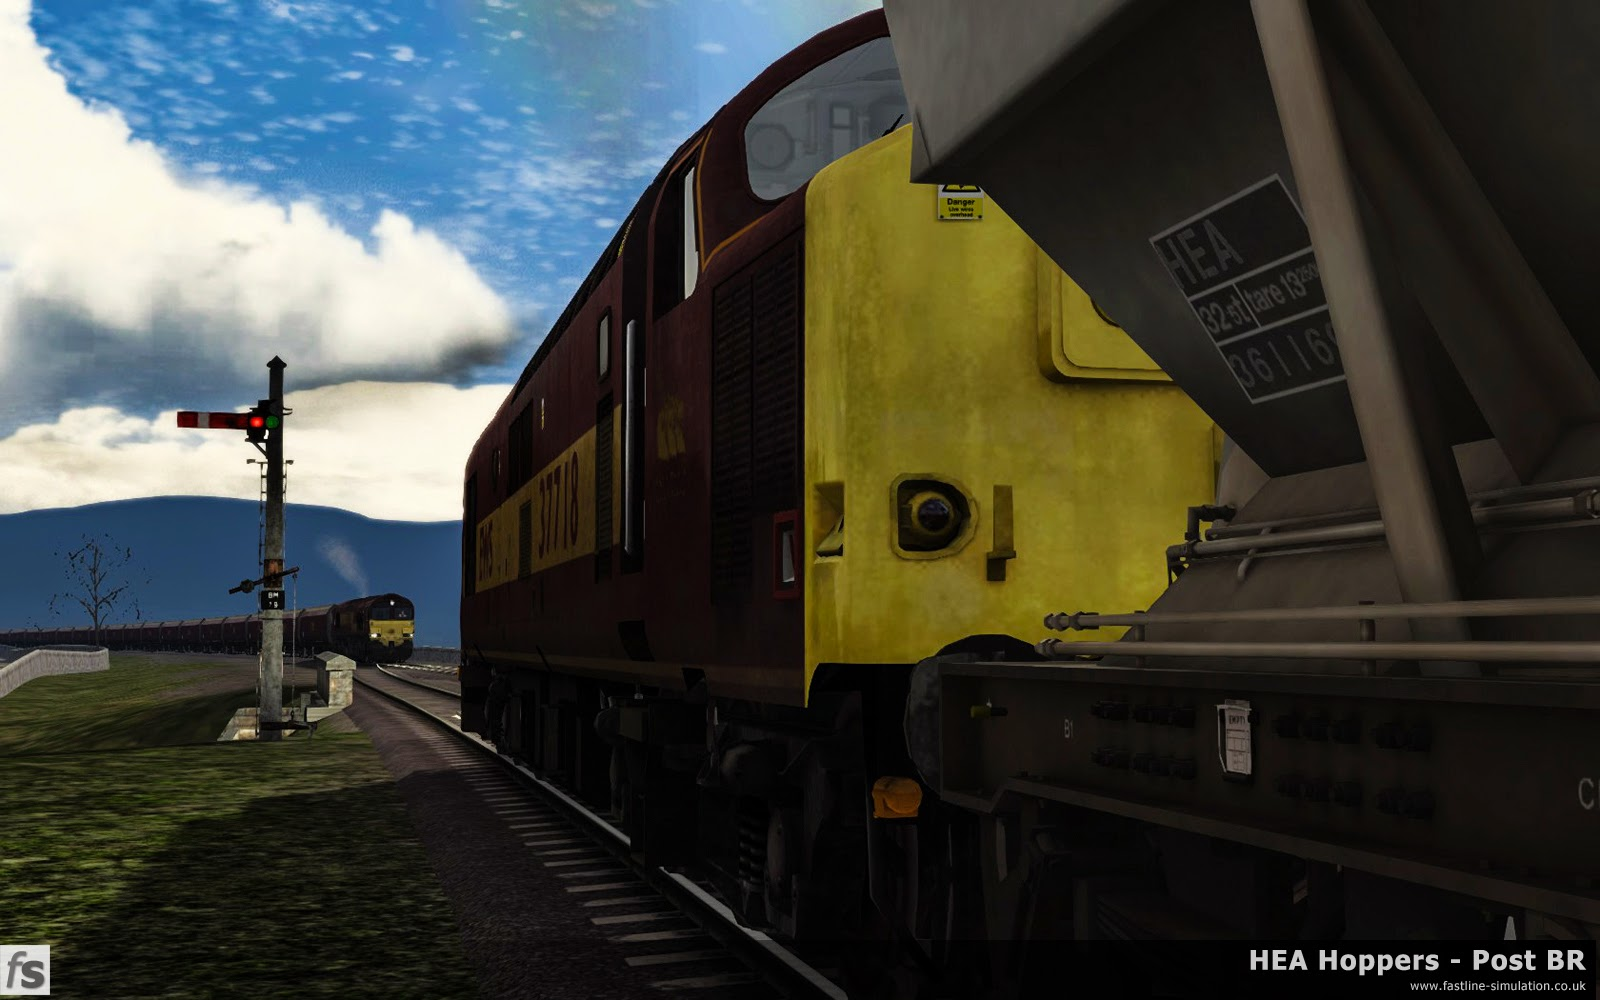 HEA Hoppers - Post BR: Class 37/7 37718 waits at the northern end of Ribblehead viaduct as a northbound empty coal train crosses. The 37 is hauling long stored HEA hoppers on their last journey to be converted into MEA mineral wagons.